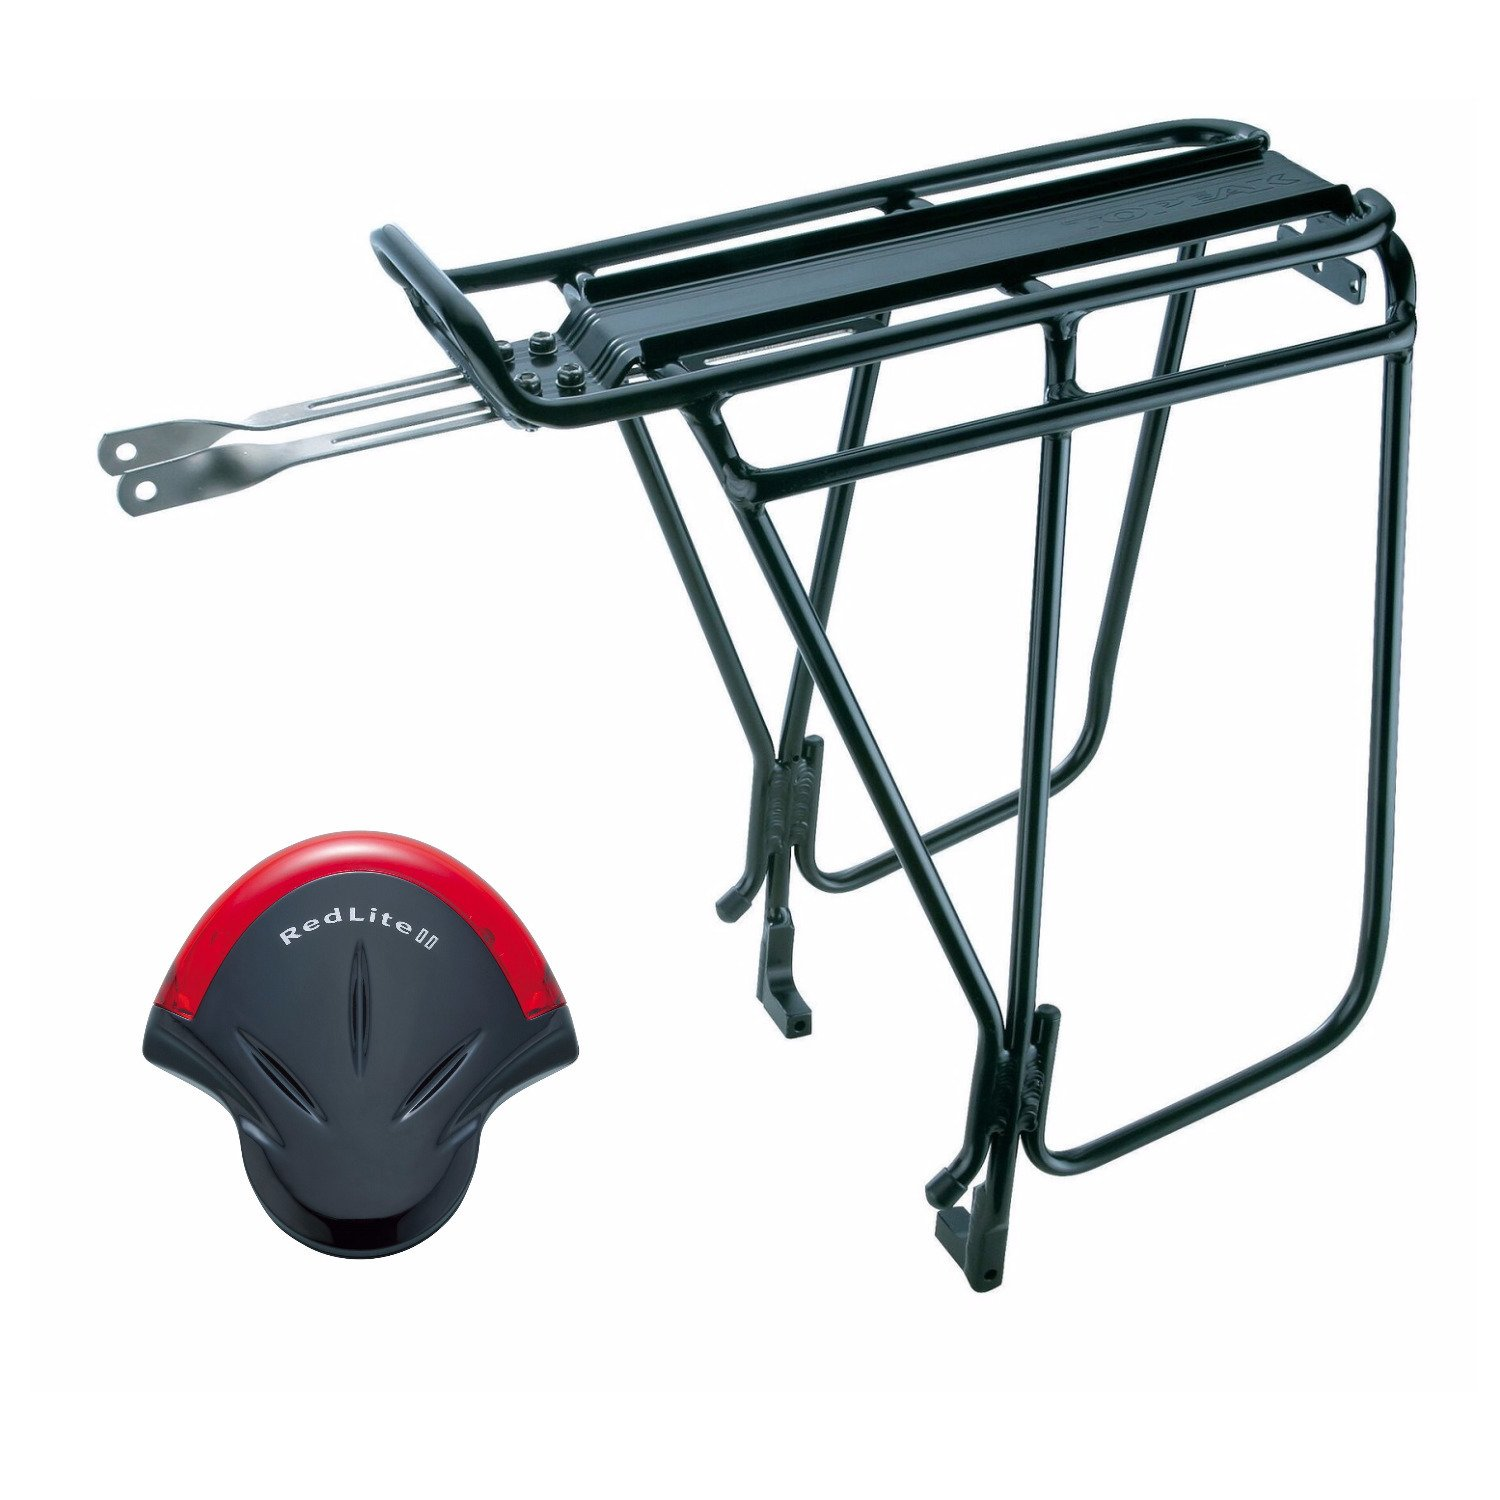 Topeak Super Tourist Bike Trunk Rack DX Disc and RedLite II Bicycle Tail Light